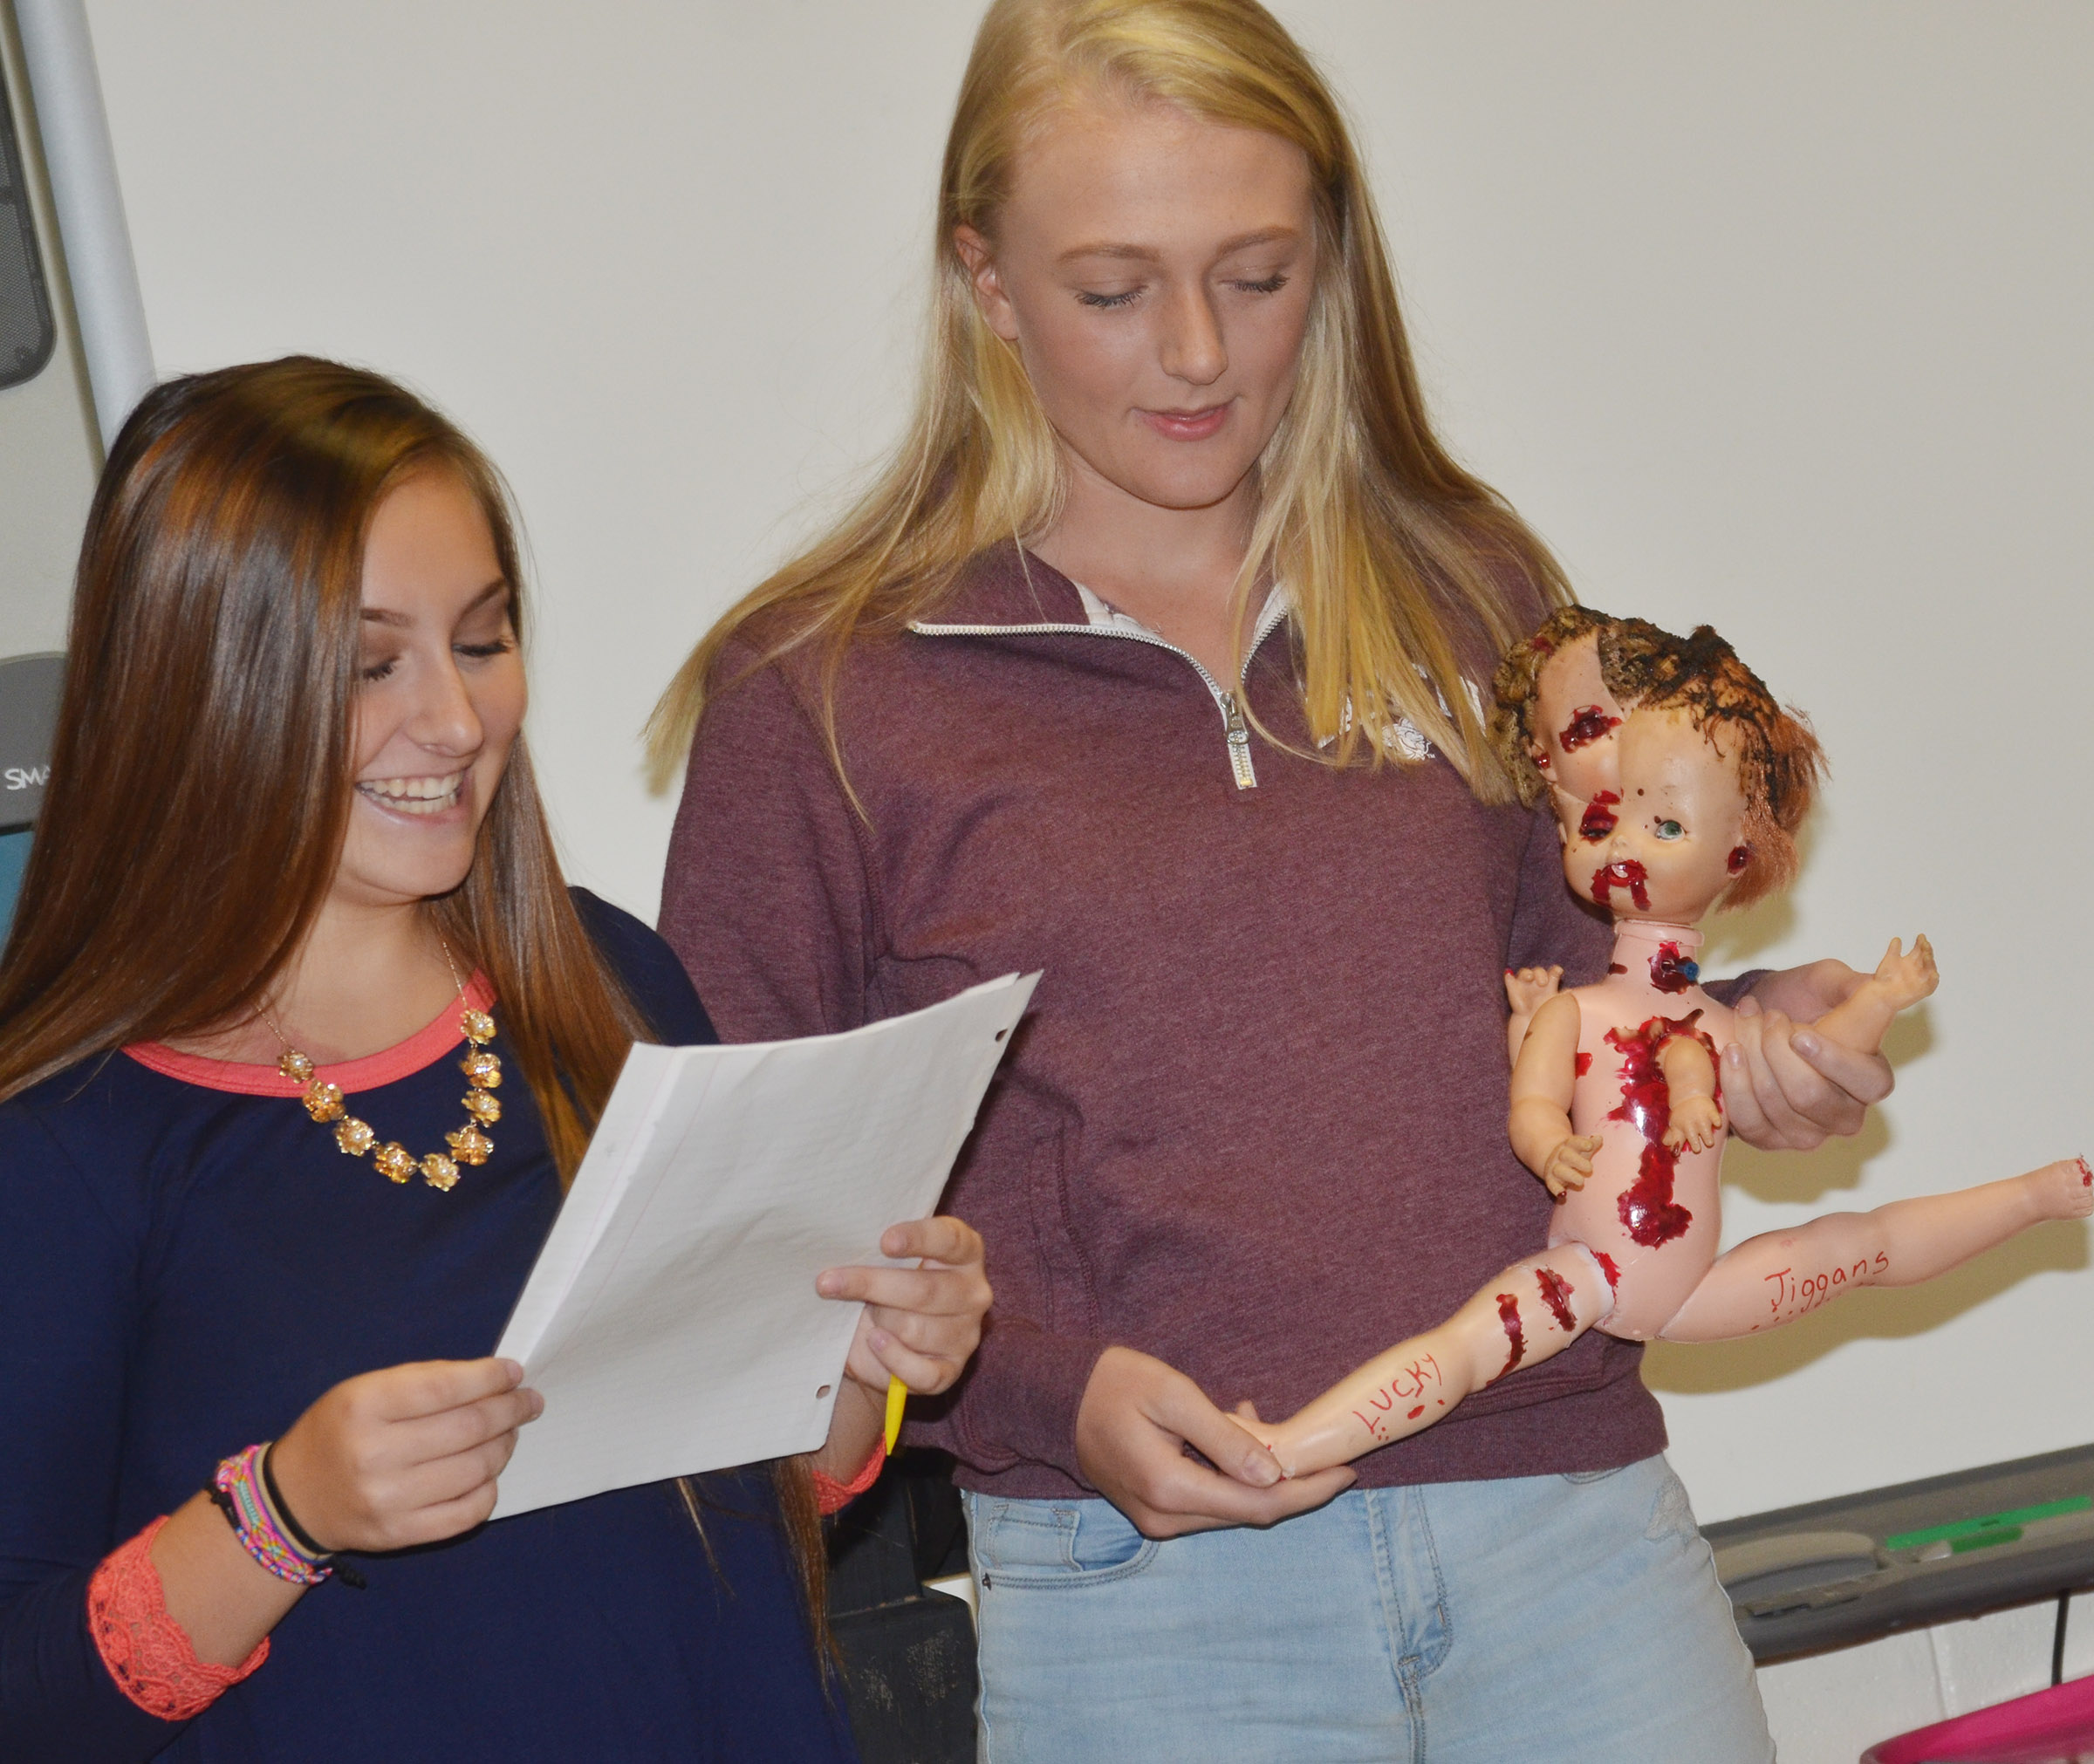 CHS juniors Reagan Knight, at left, and Abbie Dicken present their monster.